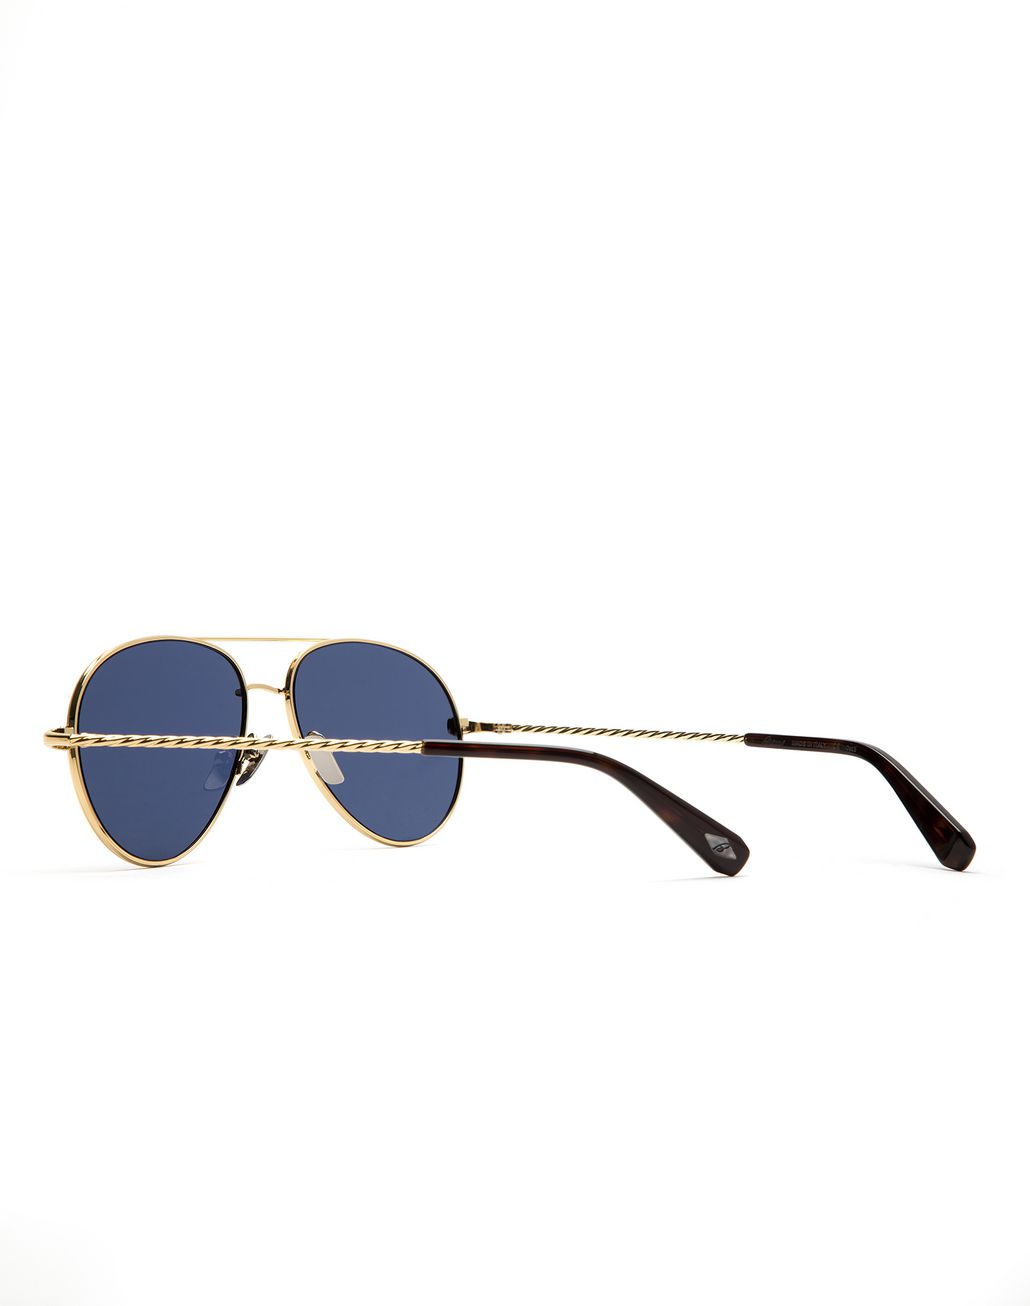 BRIONI Gold Aviator Sunglasses with Blue Lenses Sunglasses Man d